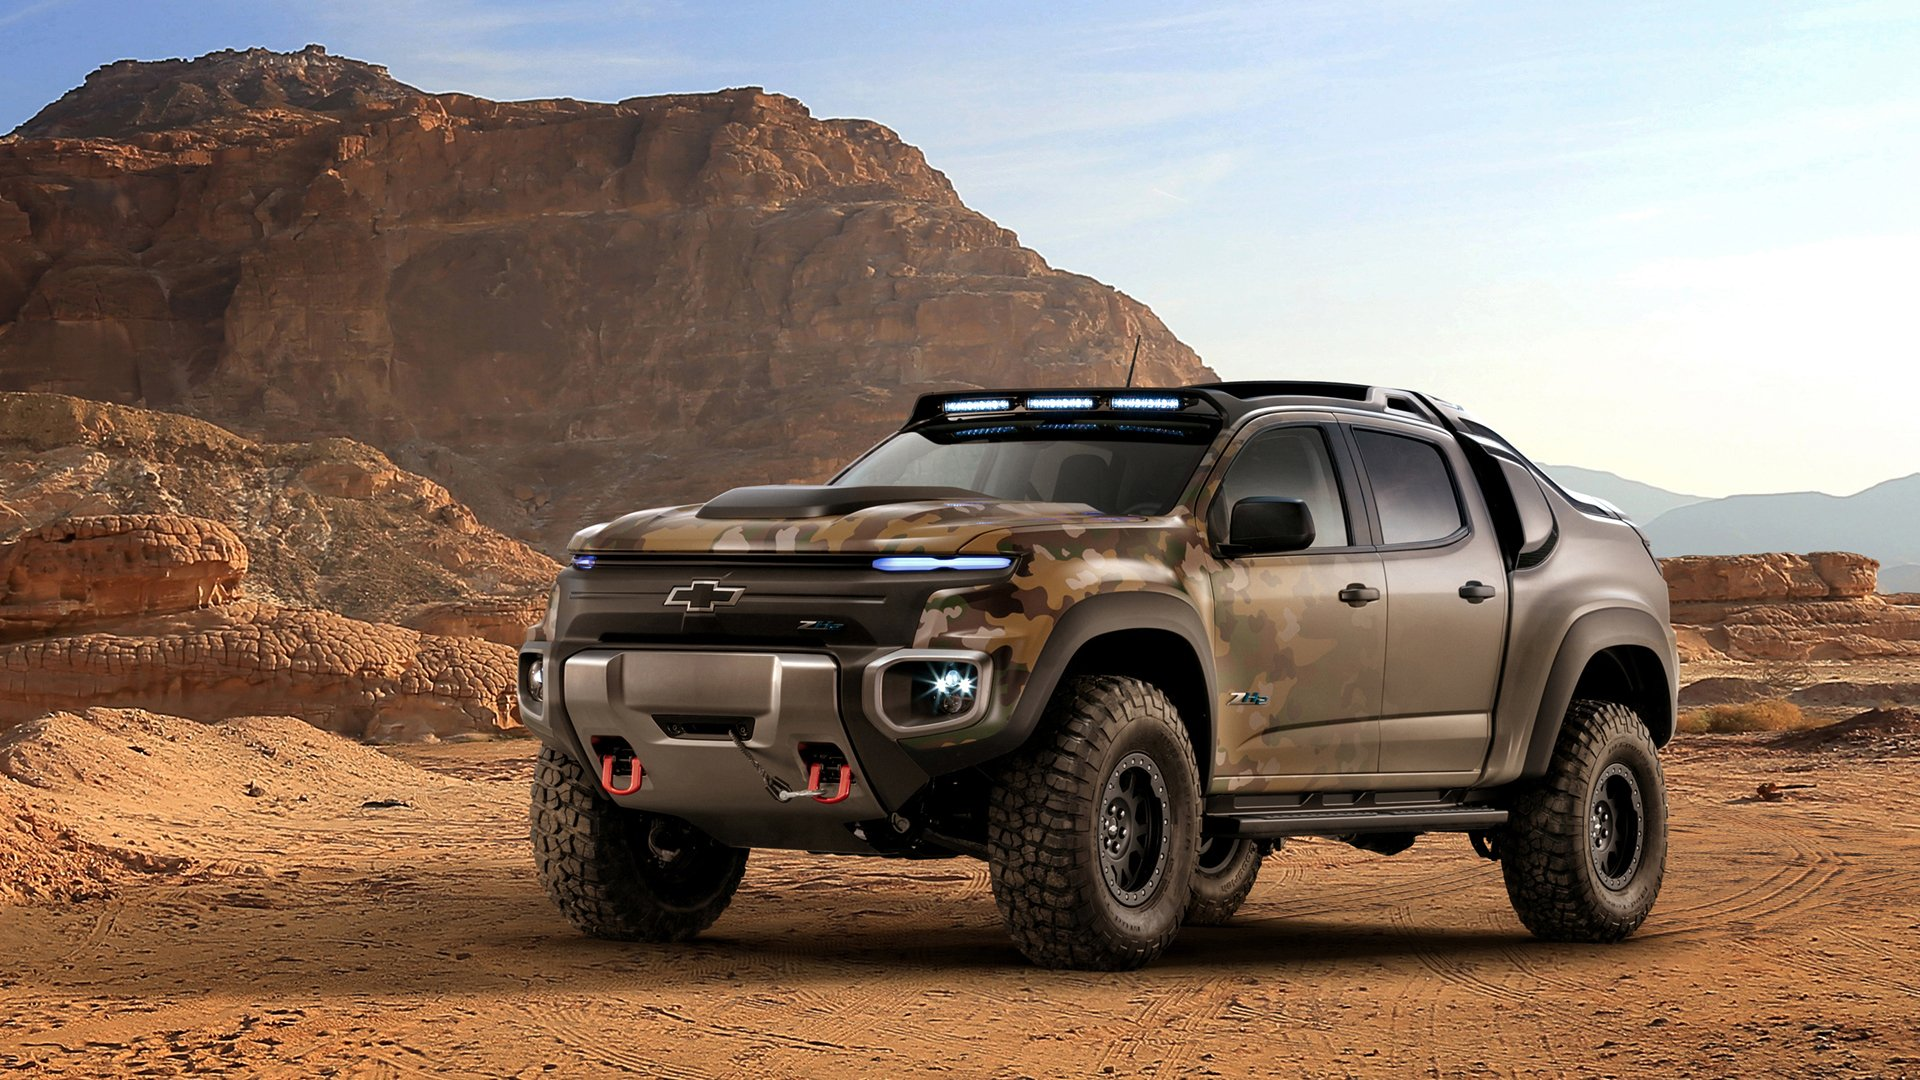 Chevrolet Colorado Zh Truck Pickup Wallpaper With Chevy Trucks Jacked Up